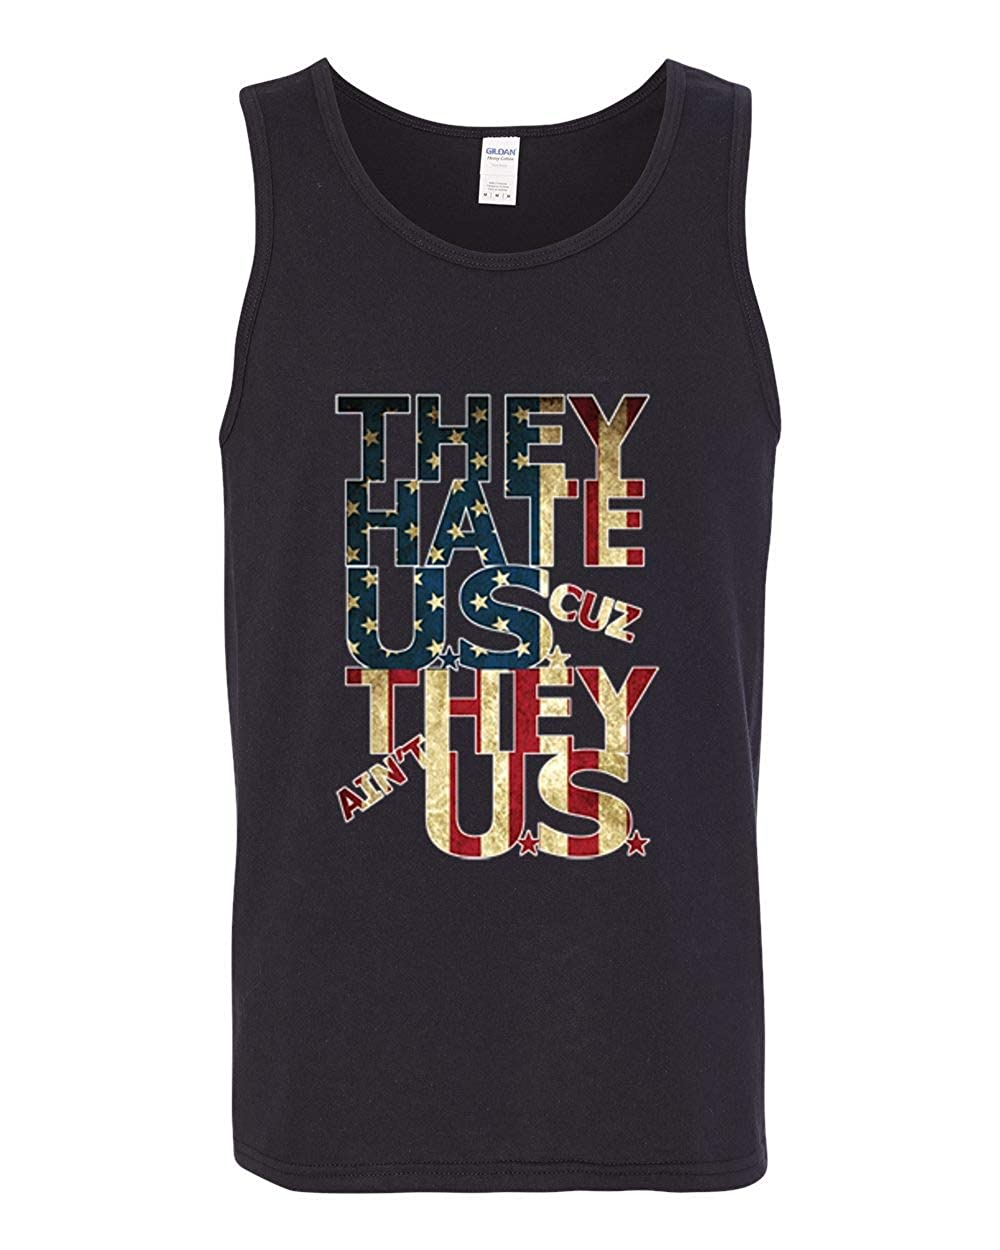 Wild Bobby They Hate Us Cause They Aint Us Mens American Pride Graphic Tank Top